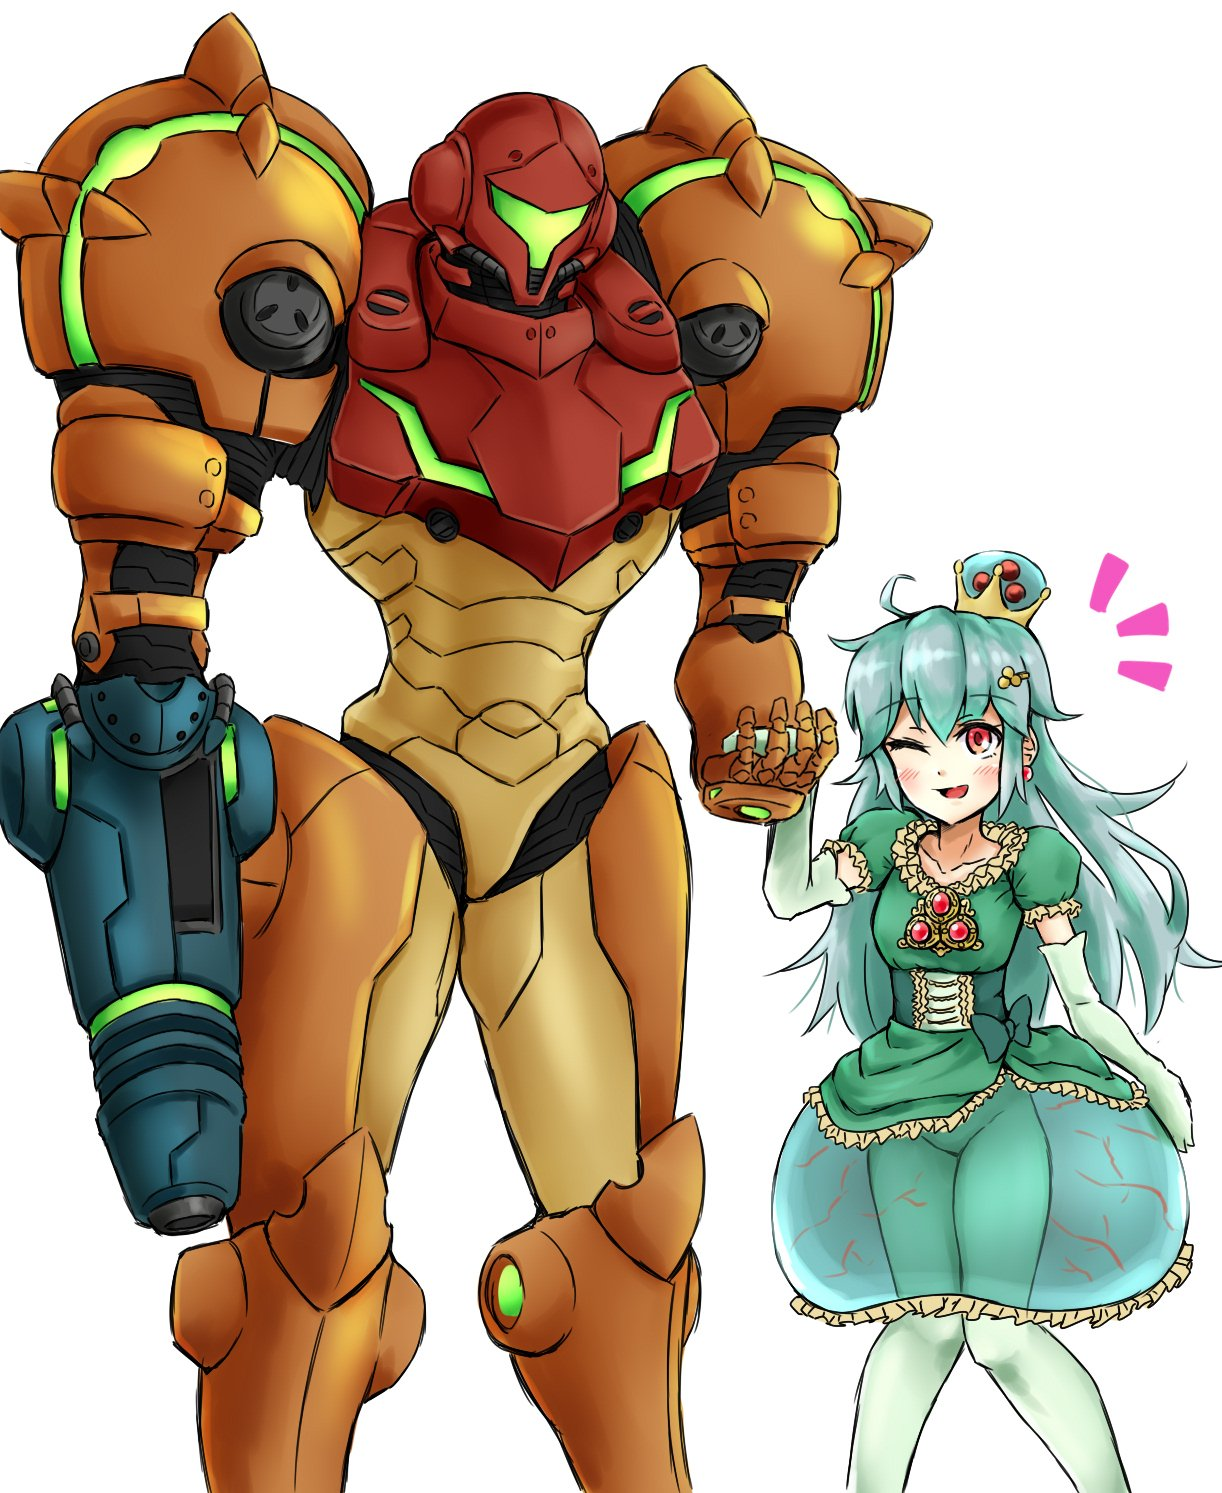 2girls arm_cannon blush bodysuit crown dress green_hair hand_holding highres long_hair mario_(series) metroid metroid_(creature) metroid_prime mother_and_daughter multiple_girls new_super_mario_bros._u_deluxe nintendo one_eye_closed power_armor power_suit red_eyes samus_aran super_crown varia_suit wakaba_(wata_ridley) weapon